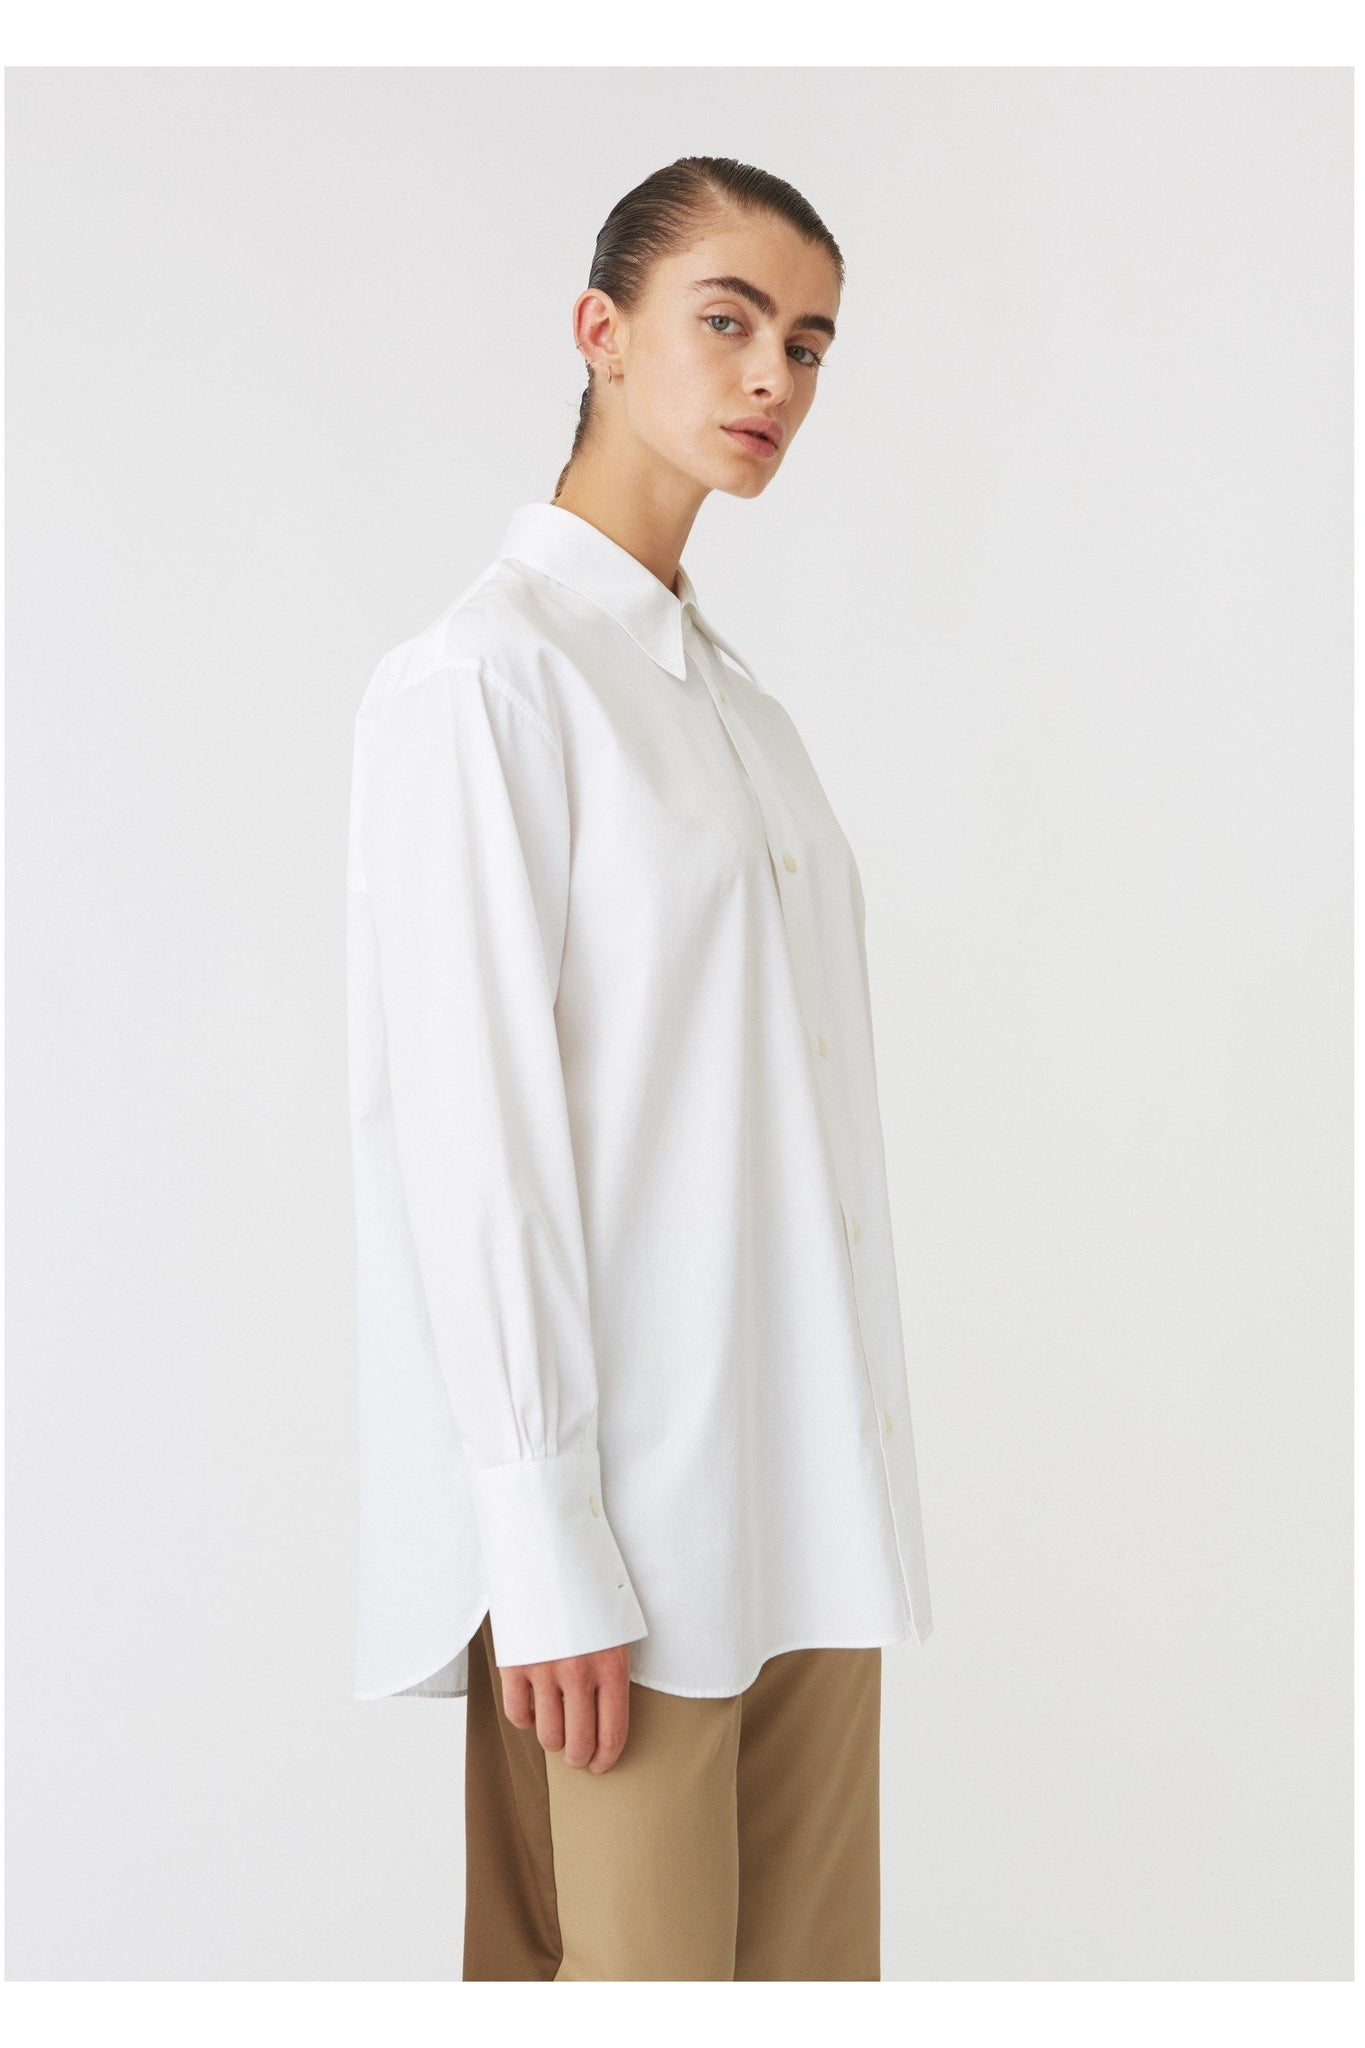 MANTRA SHIRT WHITE BY HOPE - BEYOND STUDIOS